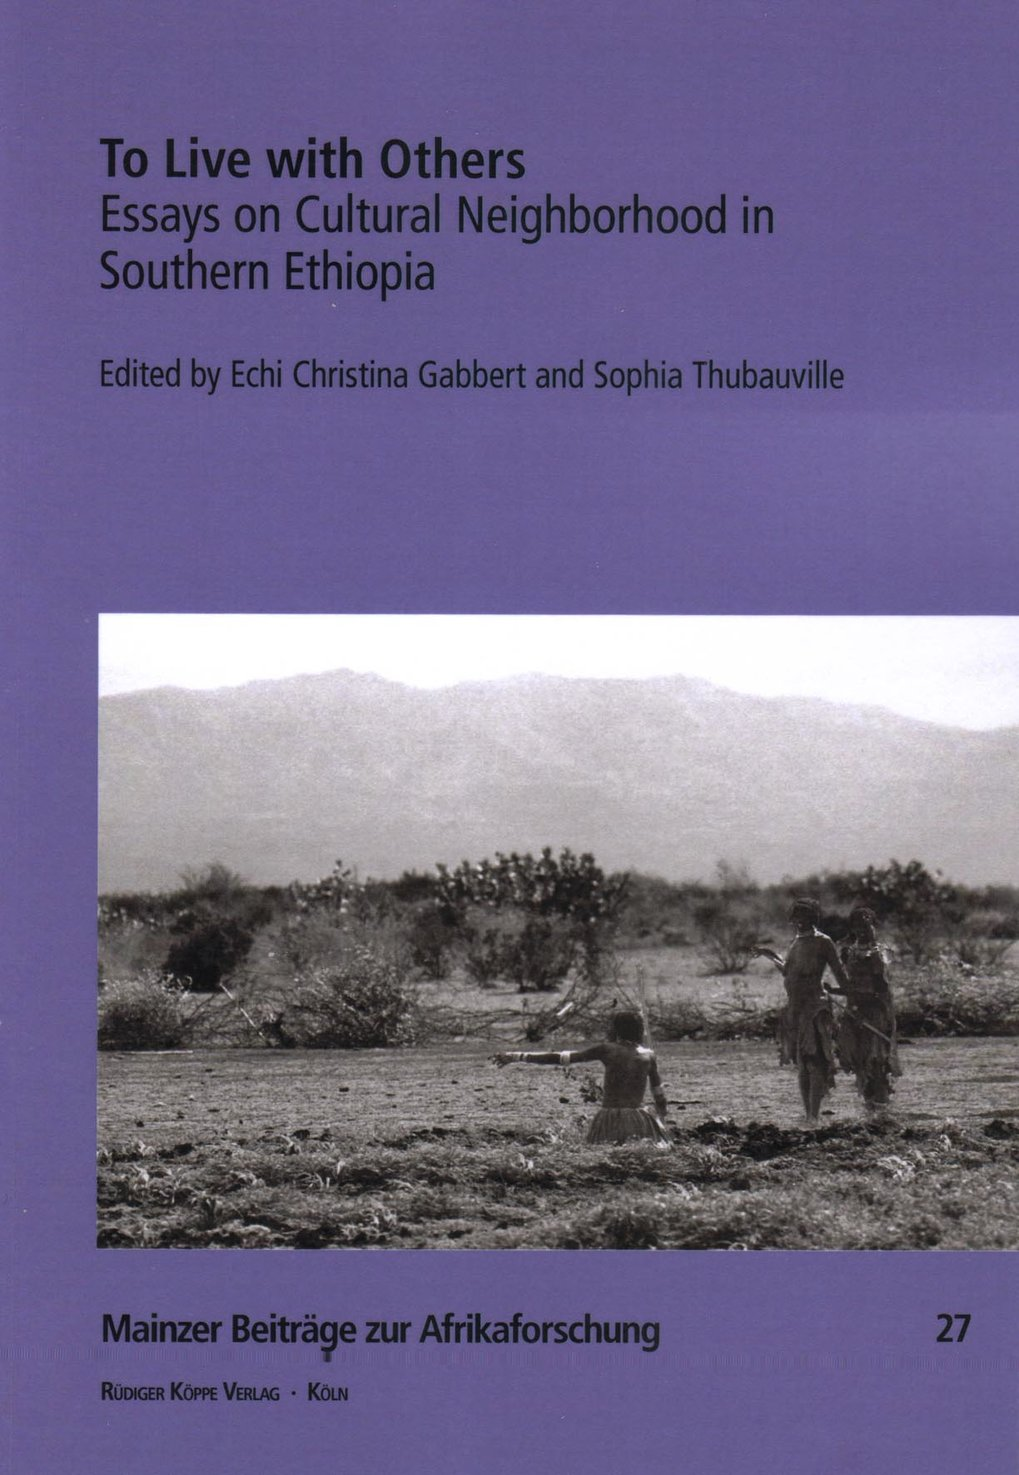 To Live with Others. Essays on Cultural Neighborhood in Southern Ethiopia